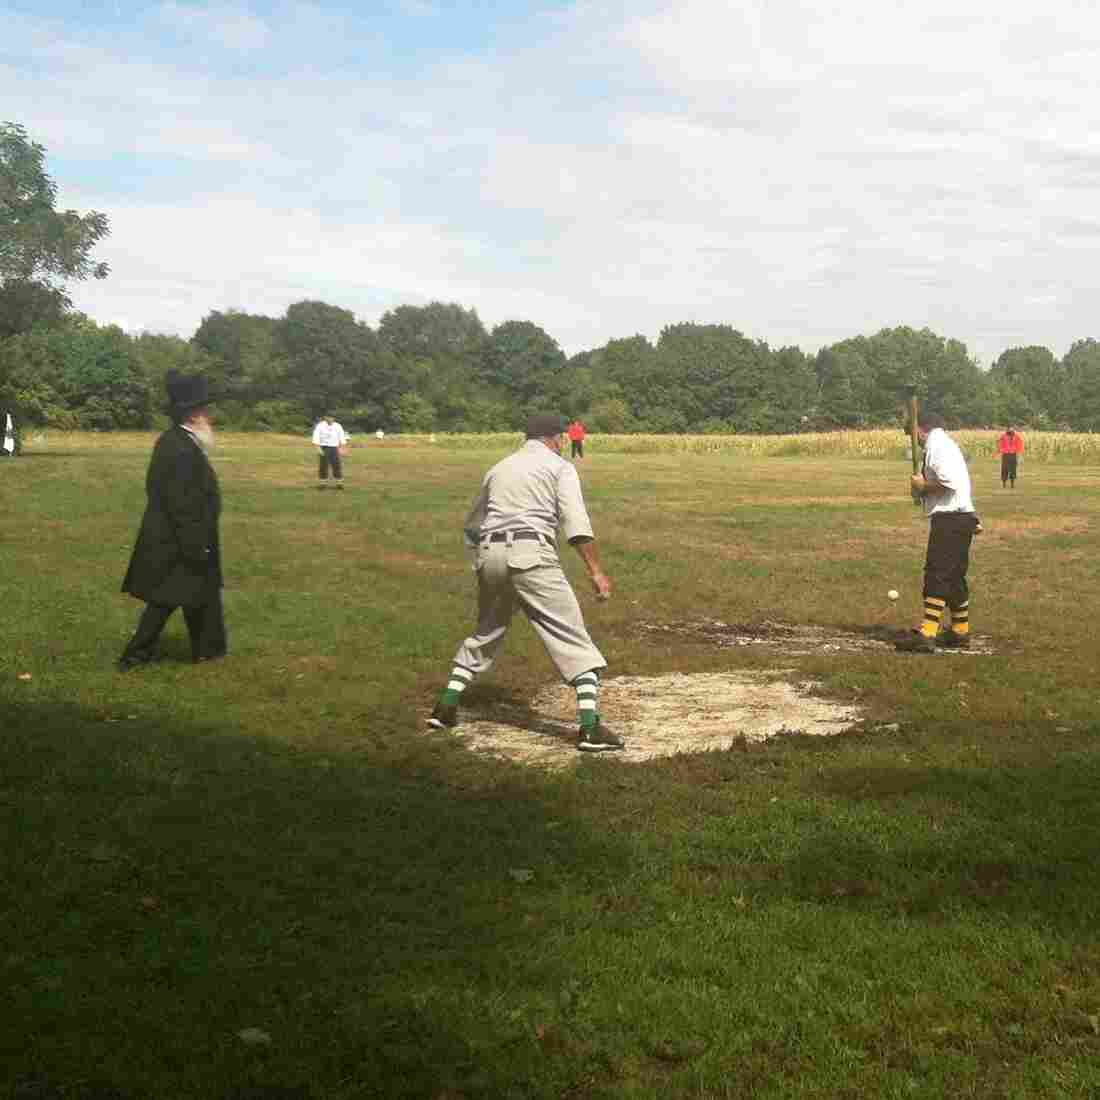 Pitching Like It's 1860, Teams Play Ball With Vintage Flair